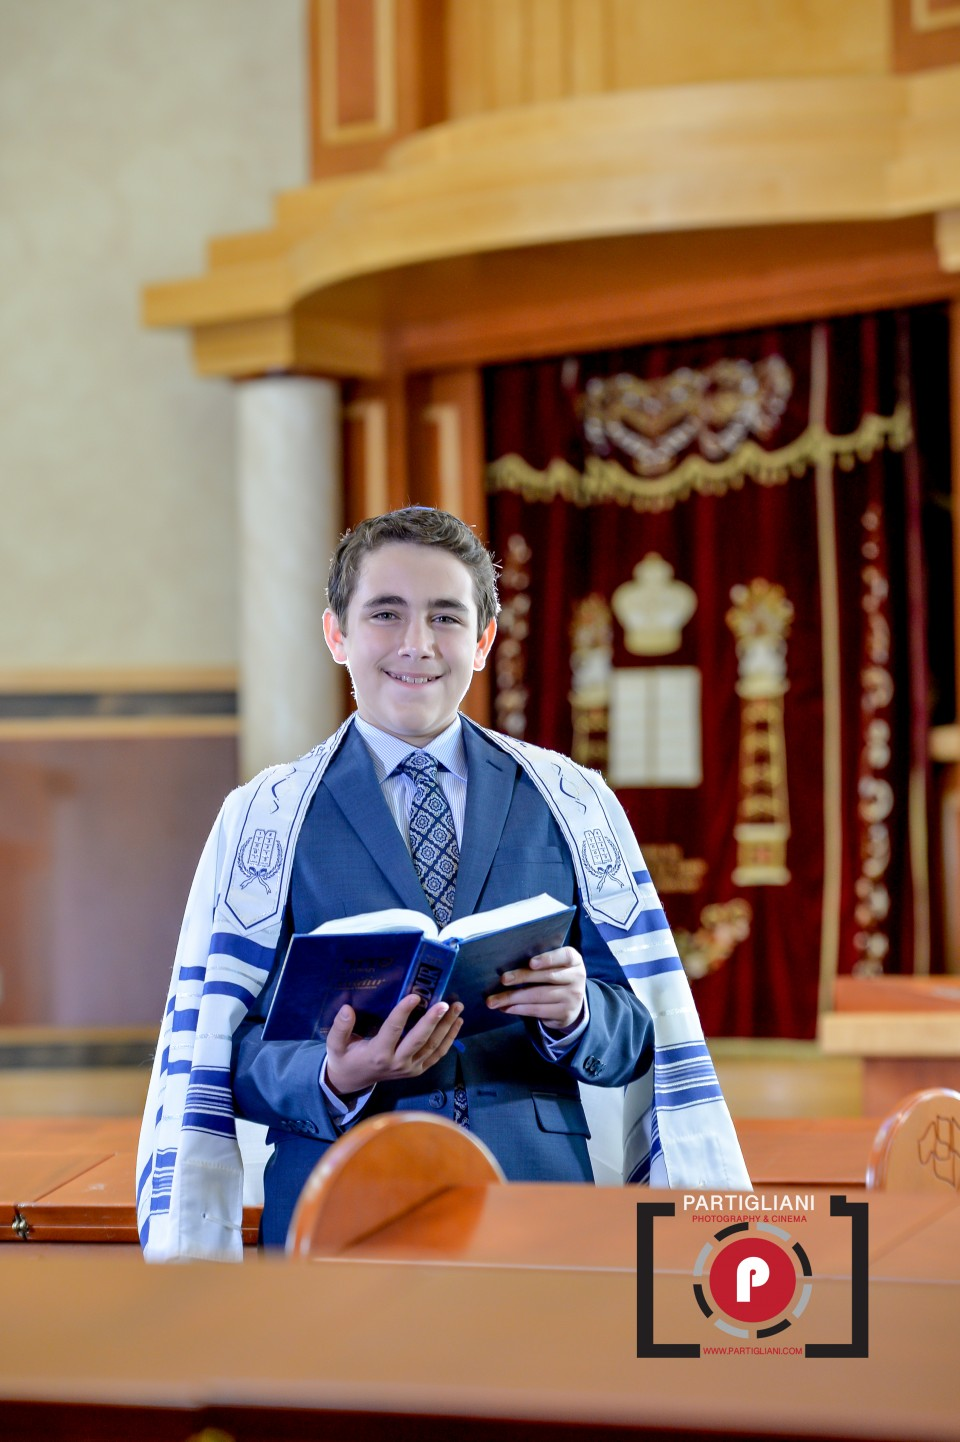 CHABAD OF WEST  BOCA, PARTIGLIANI PHOTOGRAPHY, ETHAN KLEIN-19